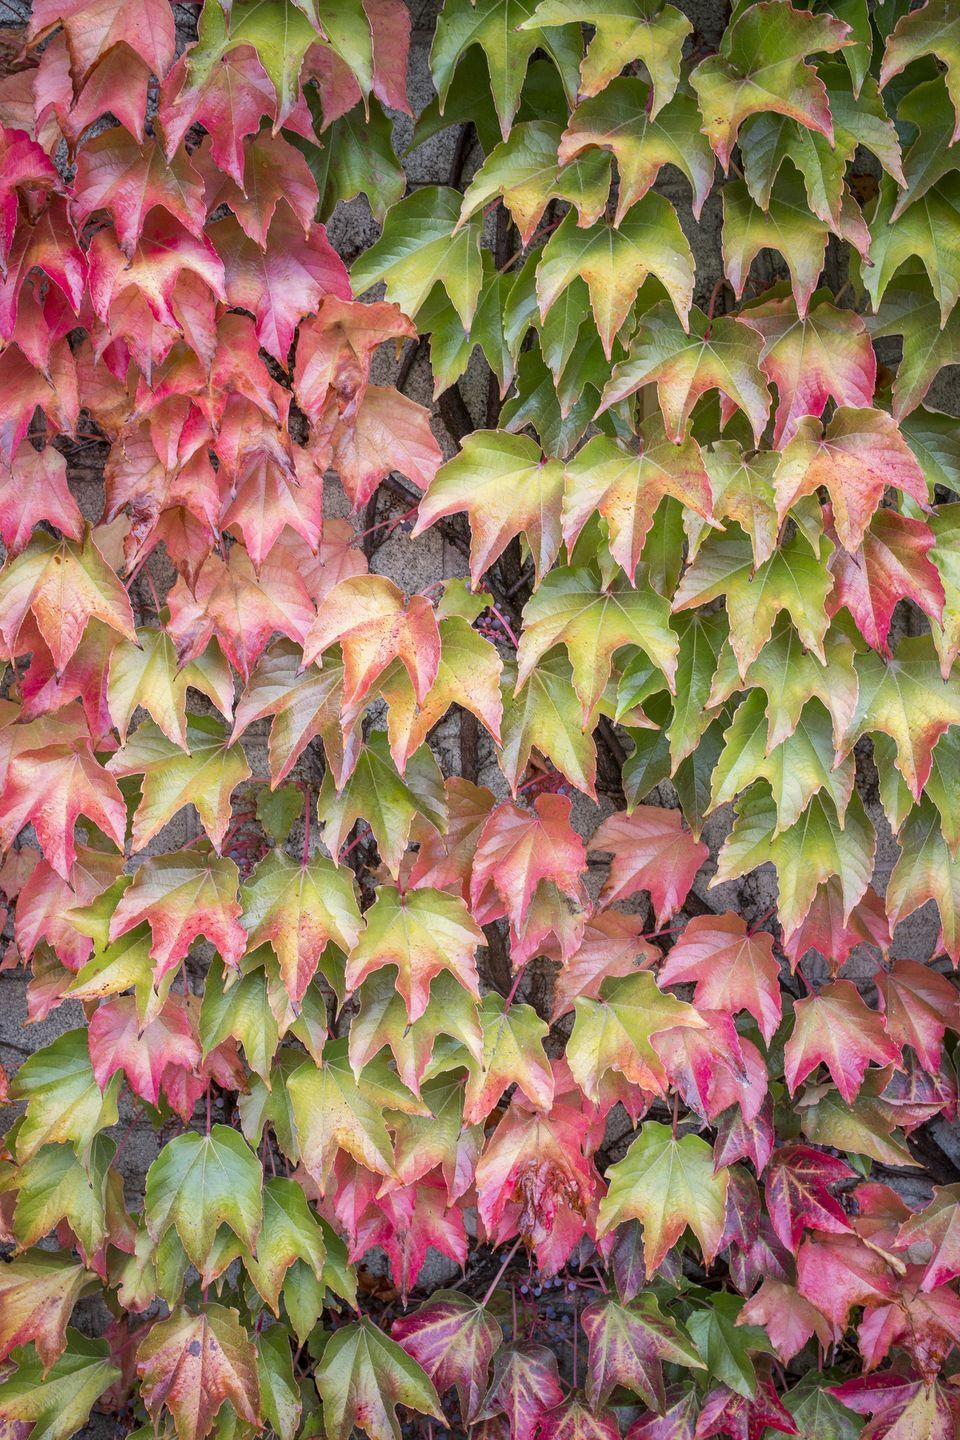 """<p>Have an ugly wall that needs covered? Virginia Creeper is a fast-growing vine with beautiful red fall color. It's also not fussy about soil types so it's a good choice for problem areas.</p><p><a class=""""link rapid-noclick-resp"""" href=""""https://www.greatgardenplants.com/collections/vines-climbers/products/red-wall-virginia-creeper?variant=37358177157287"""" rel=""""nofollow noopener"""" target=""""_blank"""" data-ylk=""""slk:SHOP VIRGINIA CREEPER PLANTS"""">SHOP VIRGINIA CREEPER PLANTS</a></p>"""